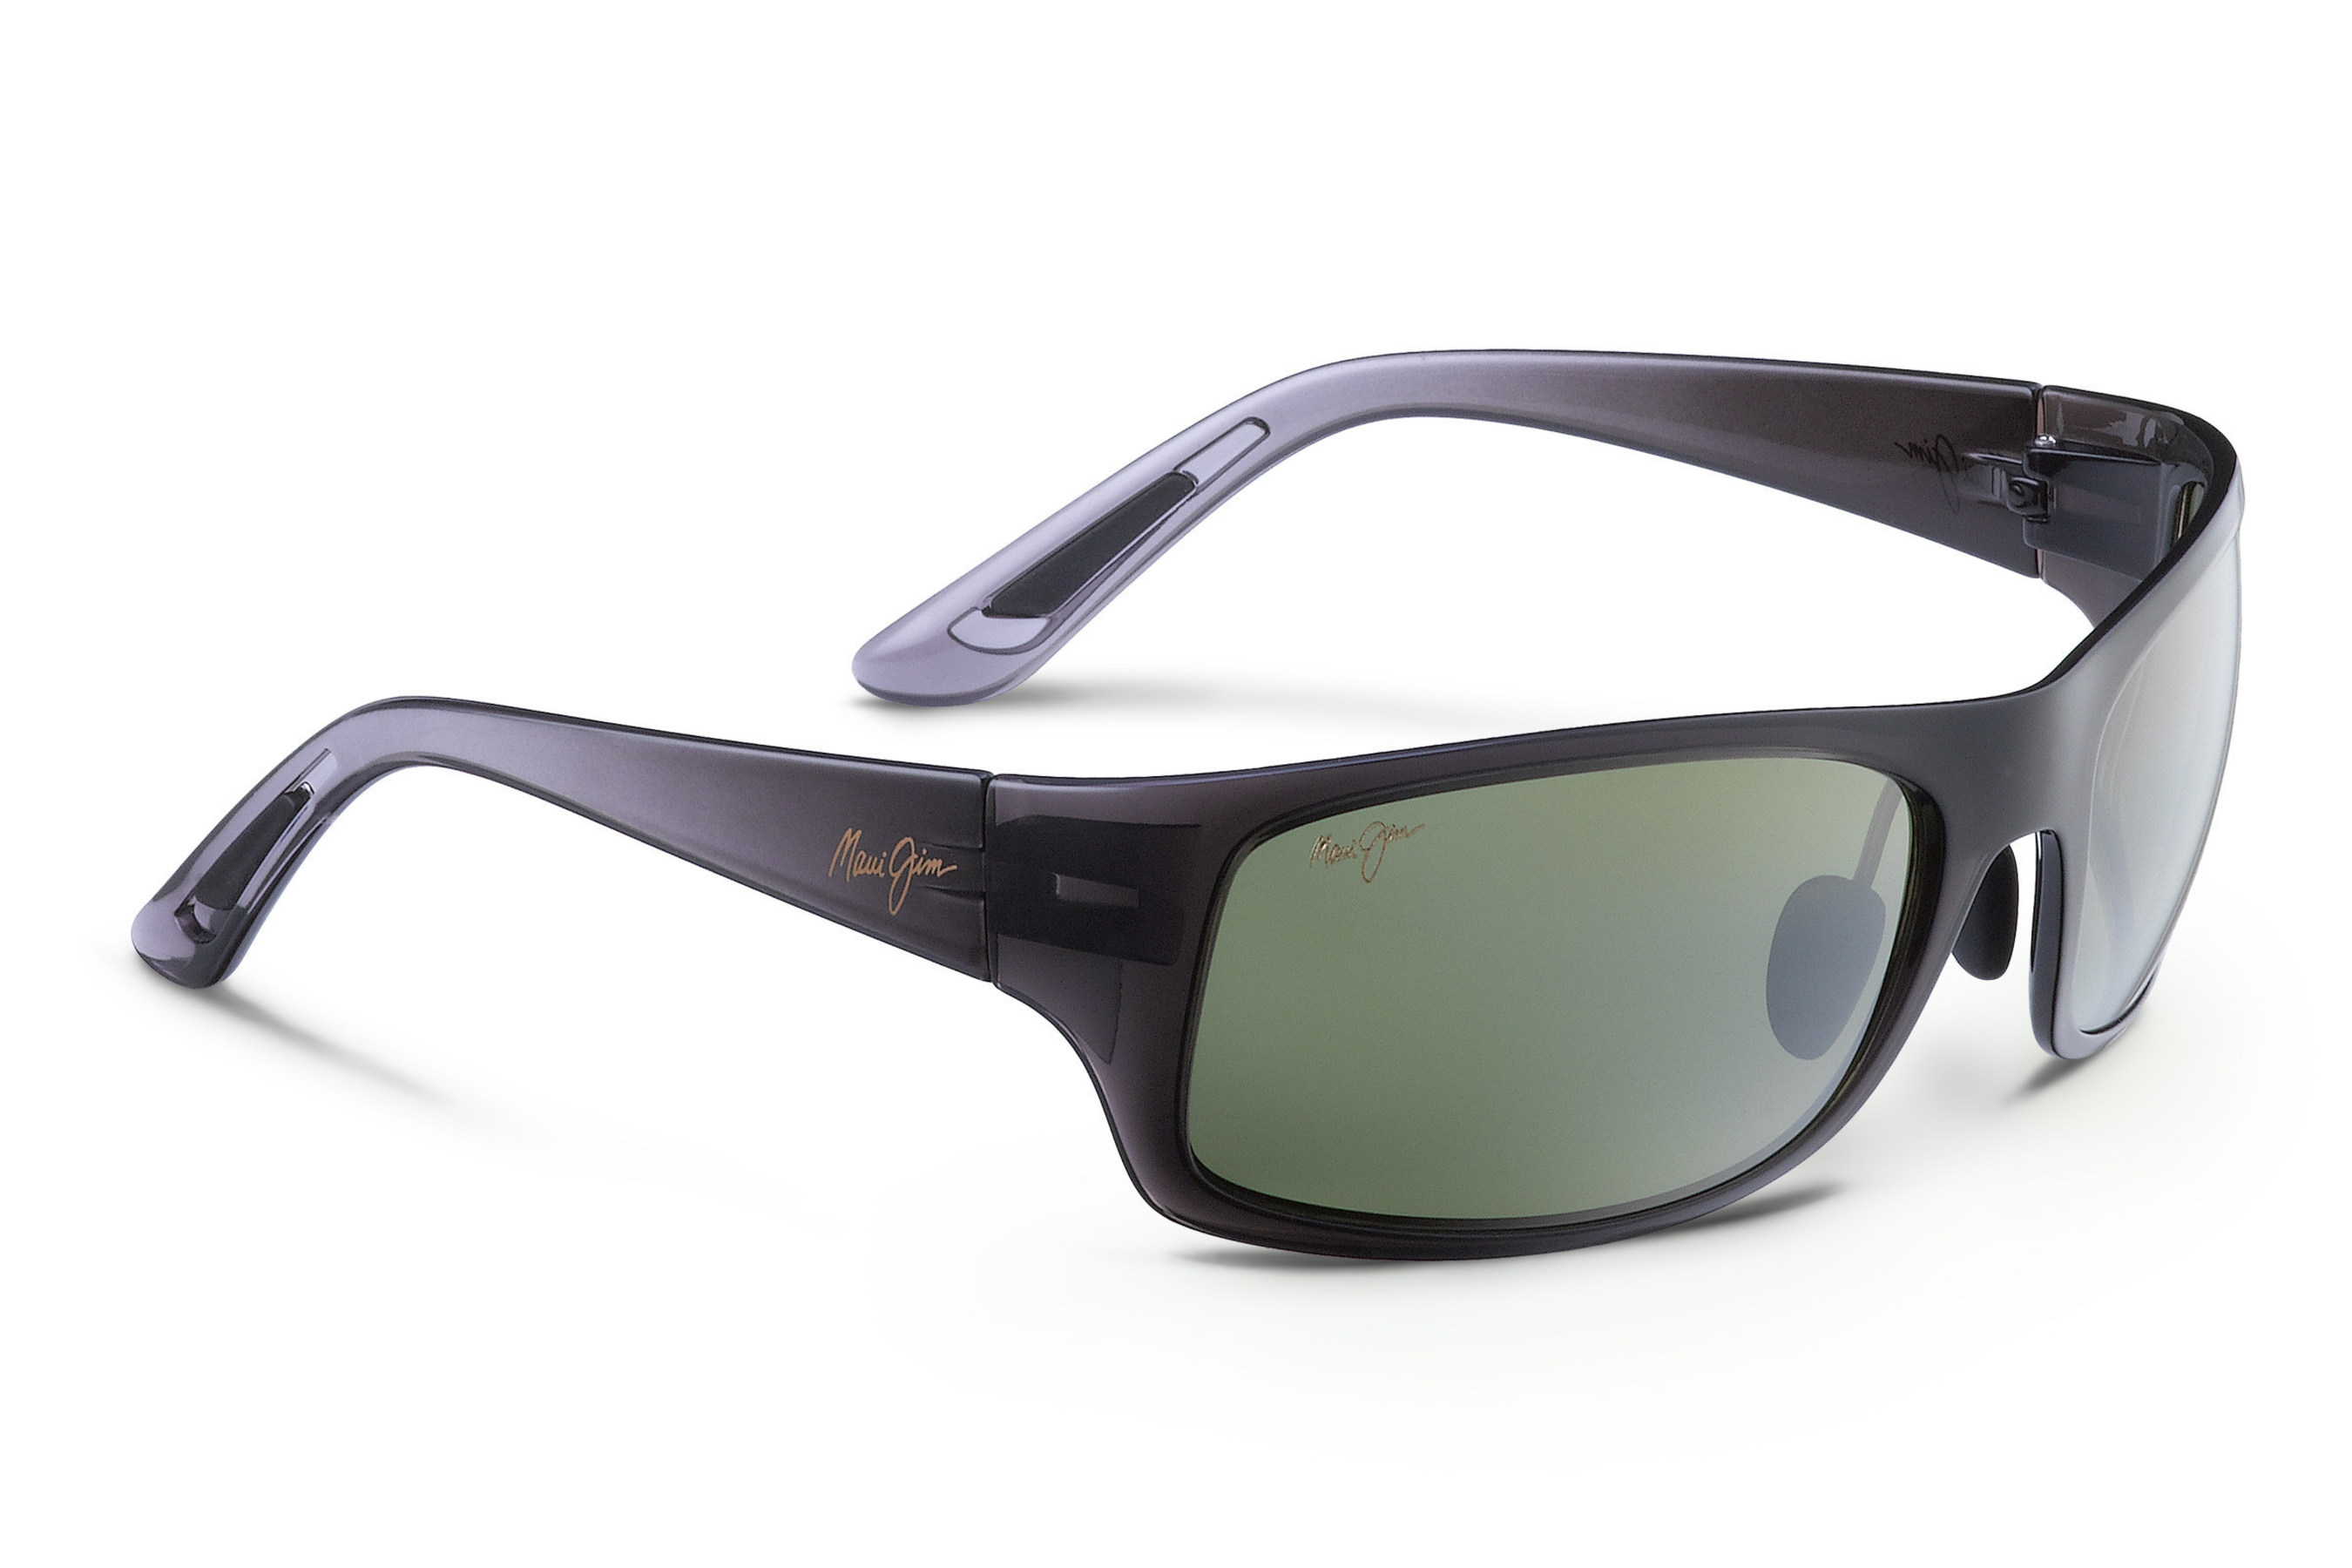 6036873b9305 Maui Jim Joins ATP With Exclusive Official Eyewear Partnership